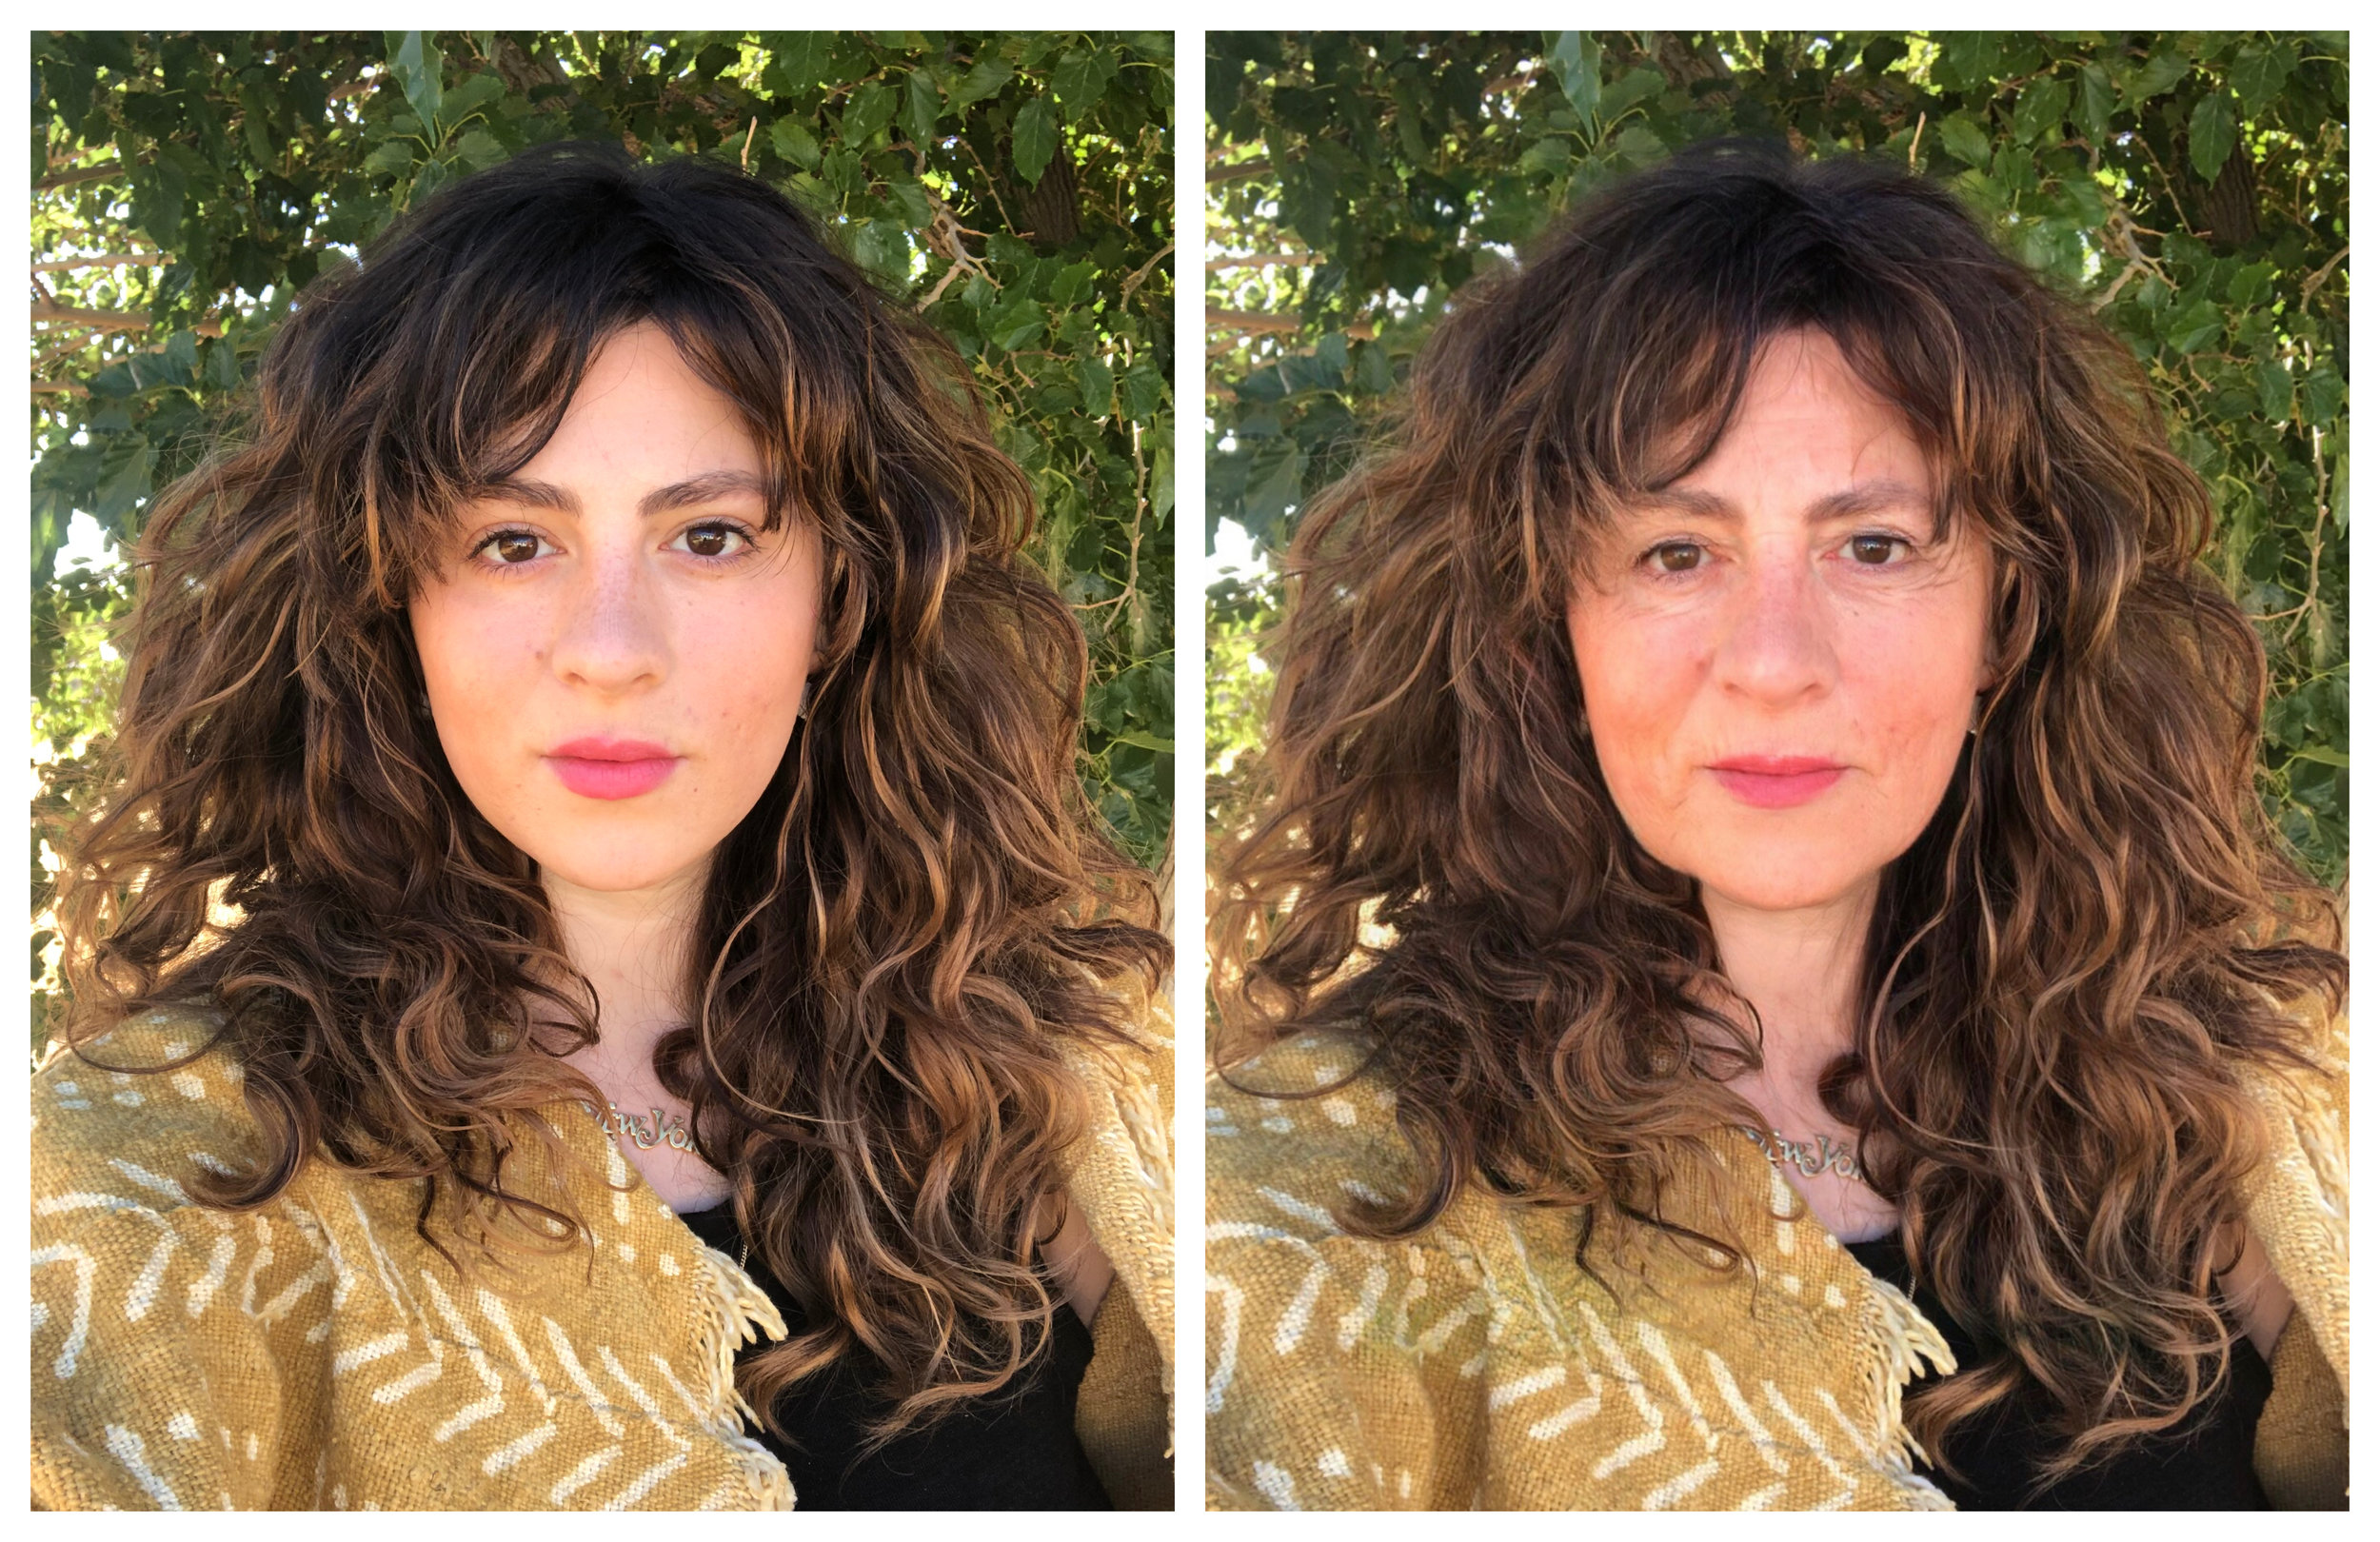 faceapp-before-and-after.jpg